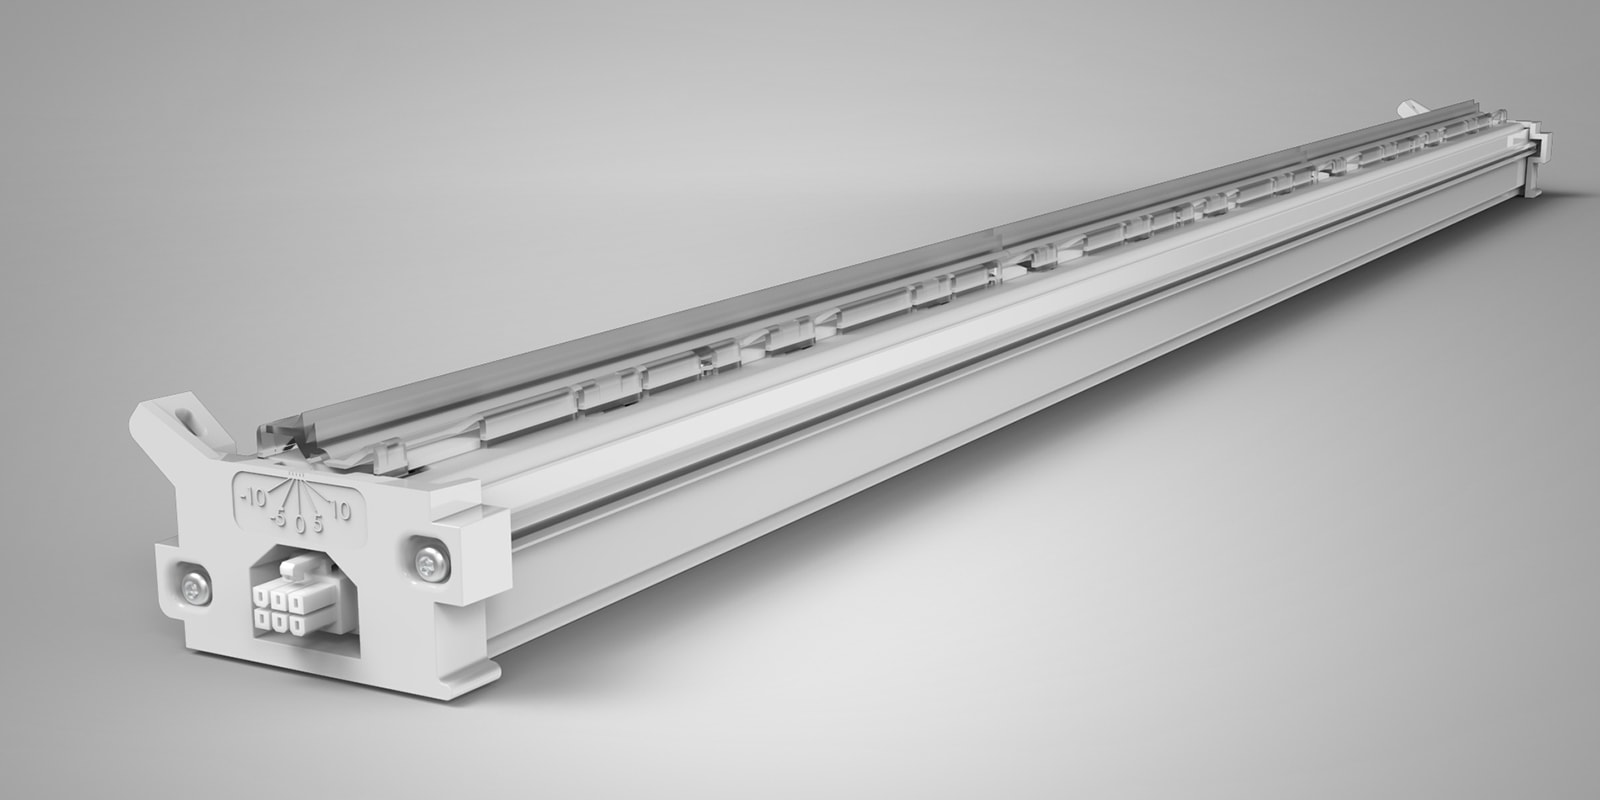 Cove lighting available in 2, 3, and 4 foot lengths allow for mounting in any cove construction